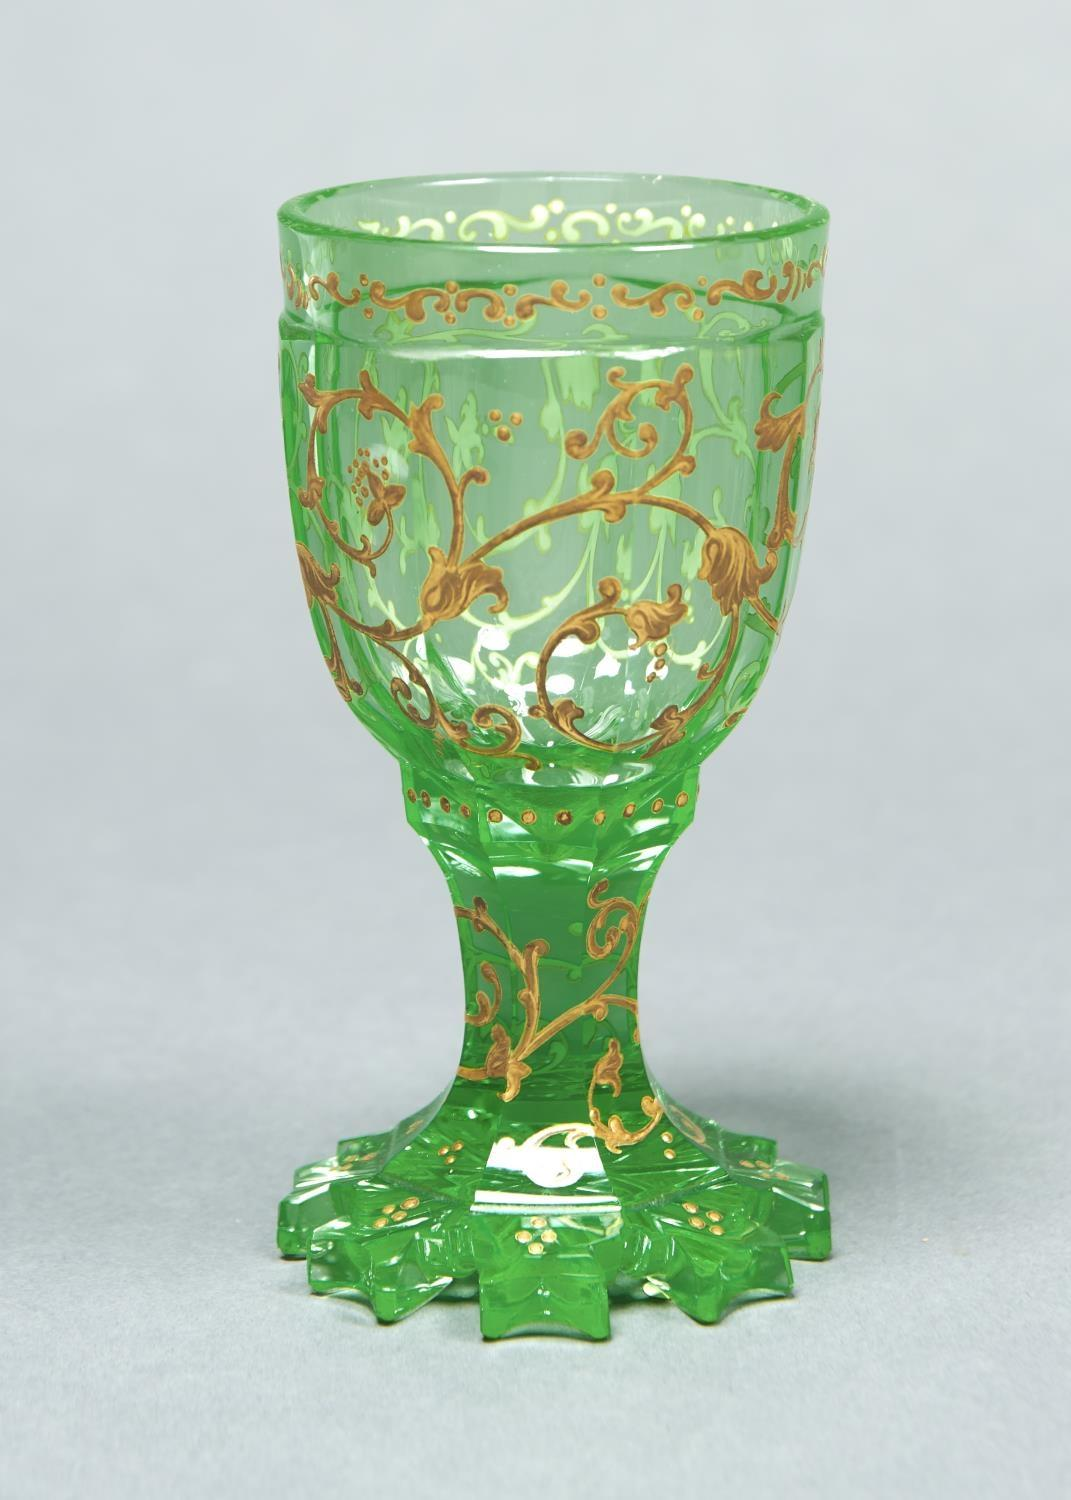 A BOHEMIAN GREEN GLASS GOBLET, C1860, THE FACETED BOWL AND WAISTED STEM WITH RAISED GILT SCROLLING